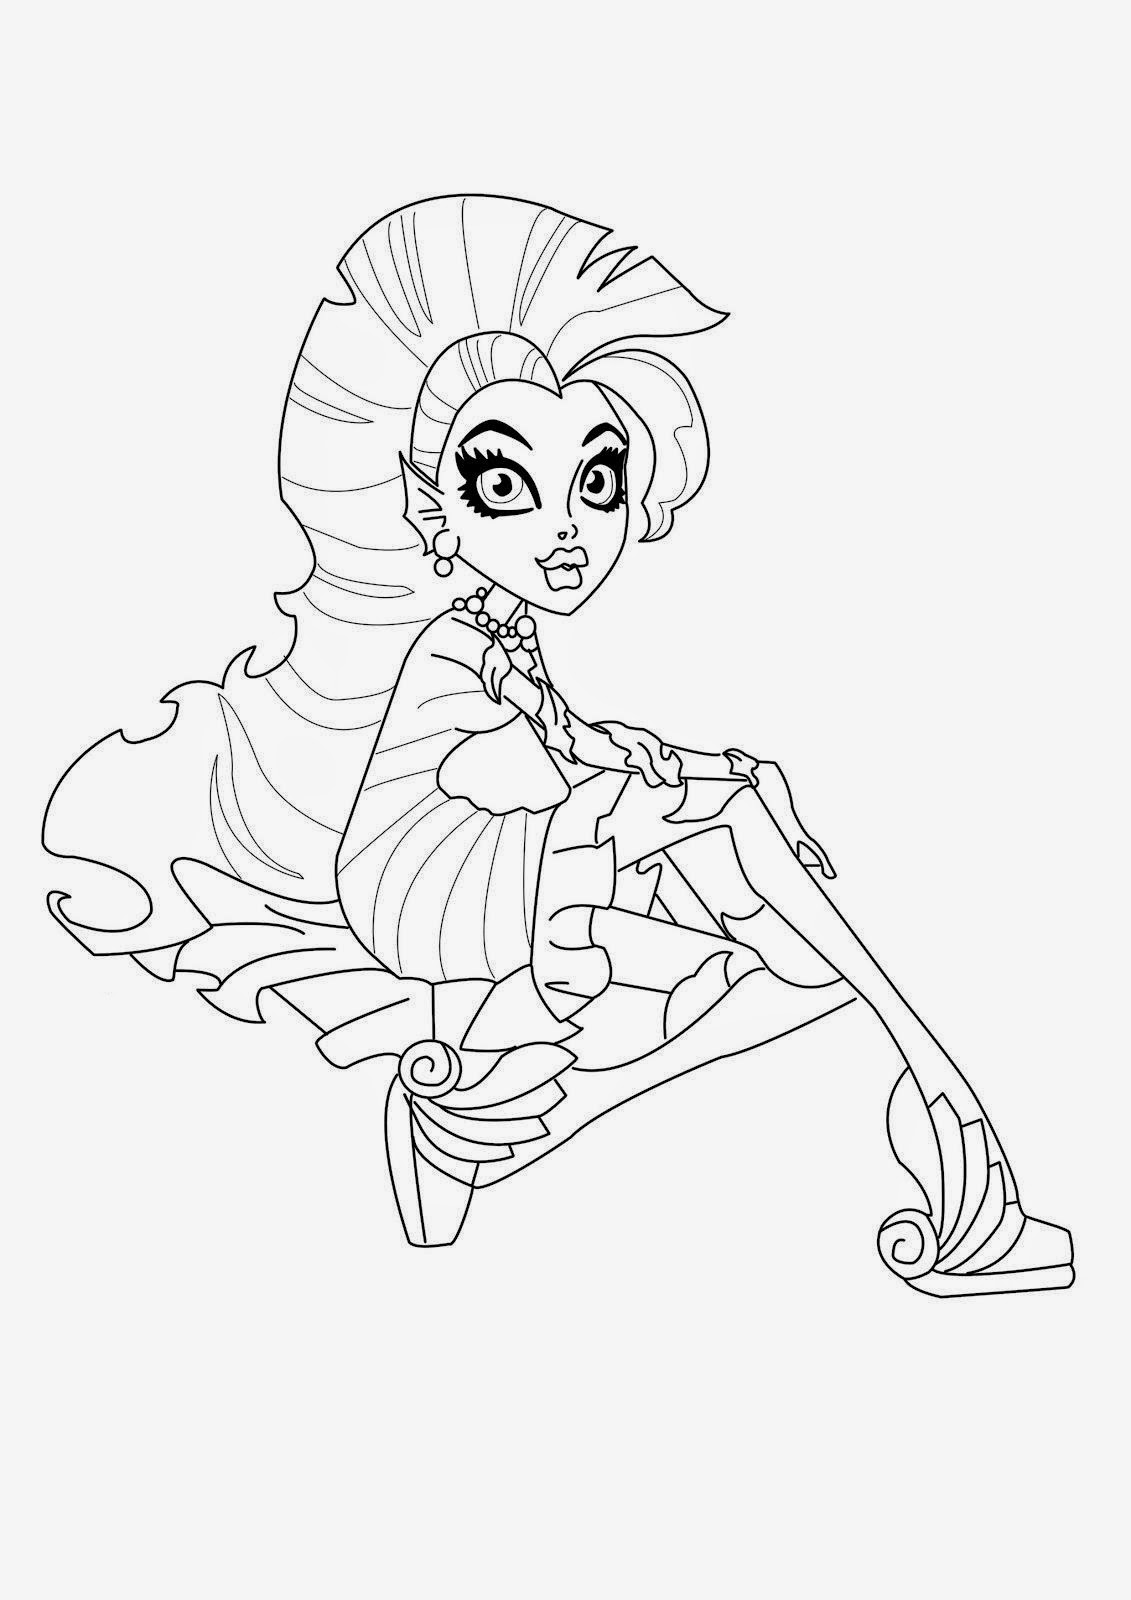 printable monster high coloring pages monster high coloring pages download and print monster printable high monster pages coloring